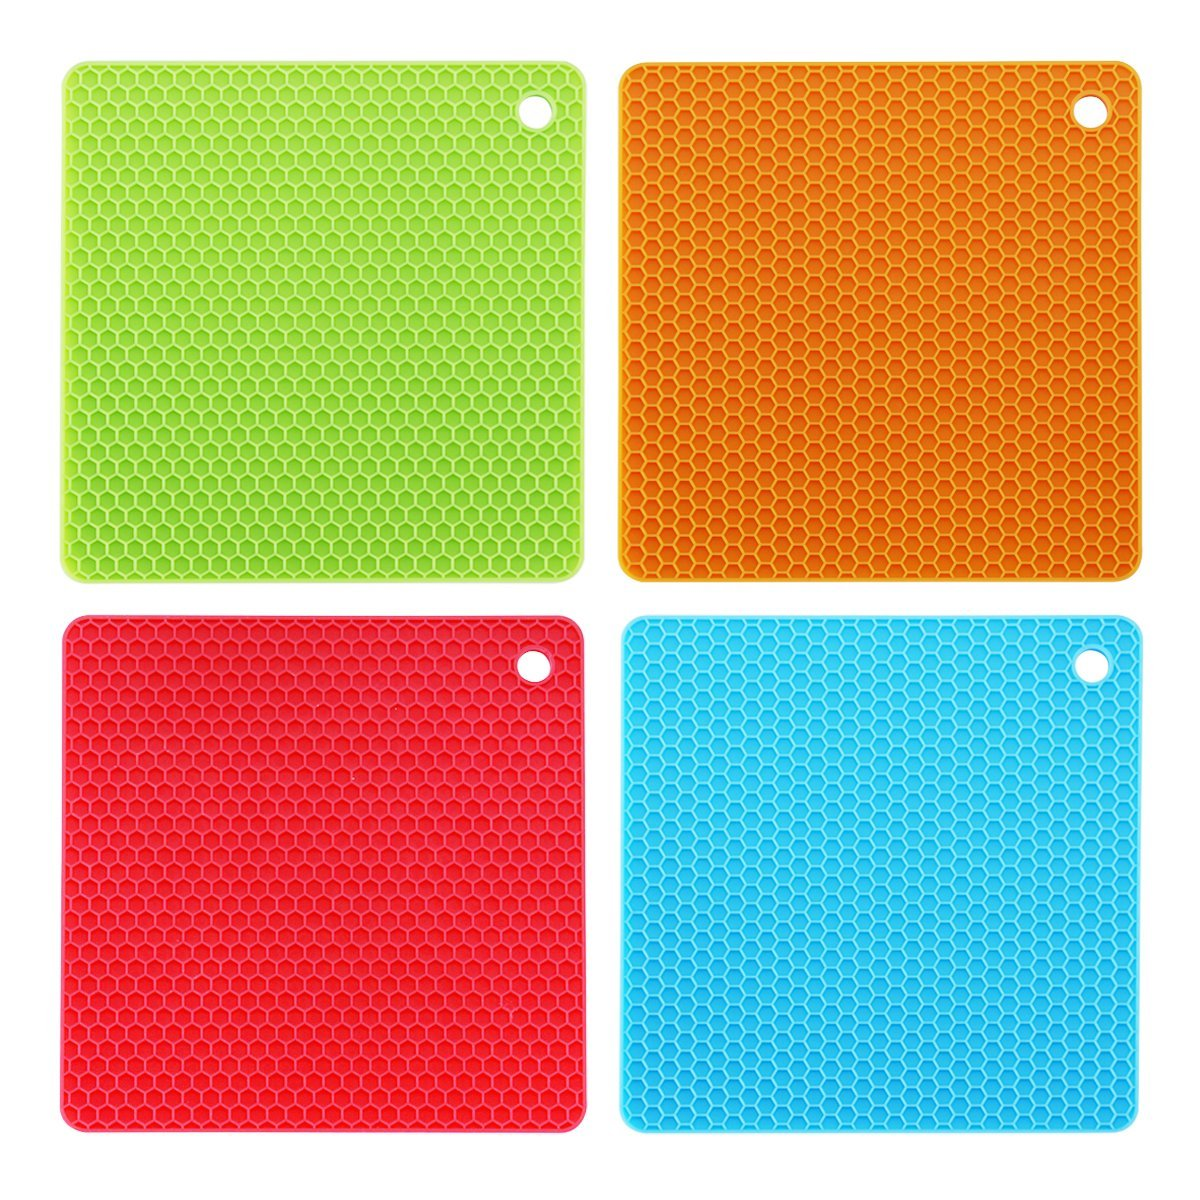 Nonslip Silicone Table Placemat Cup Coaster Heat Resistant Pot Holder  Kitchen Accessories(china